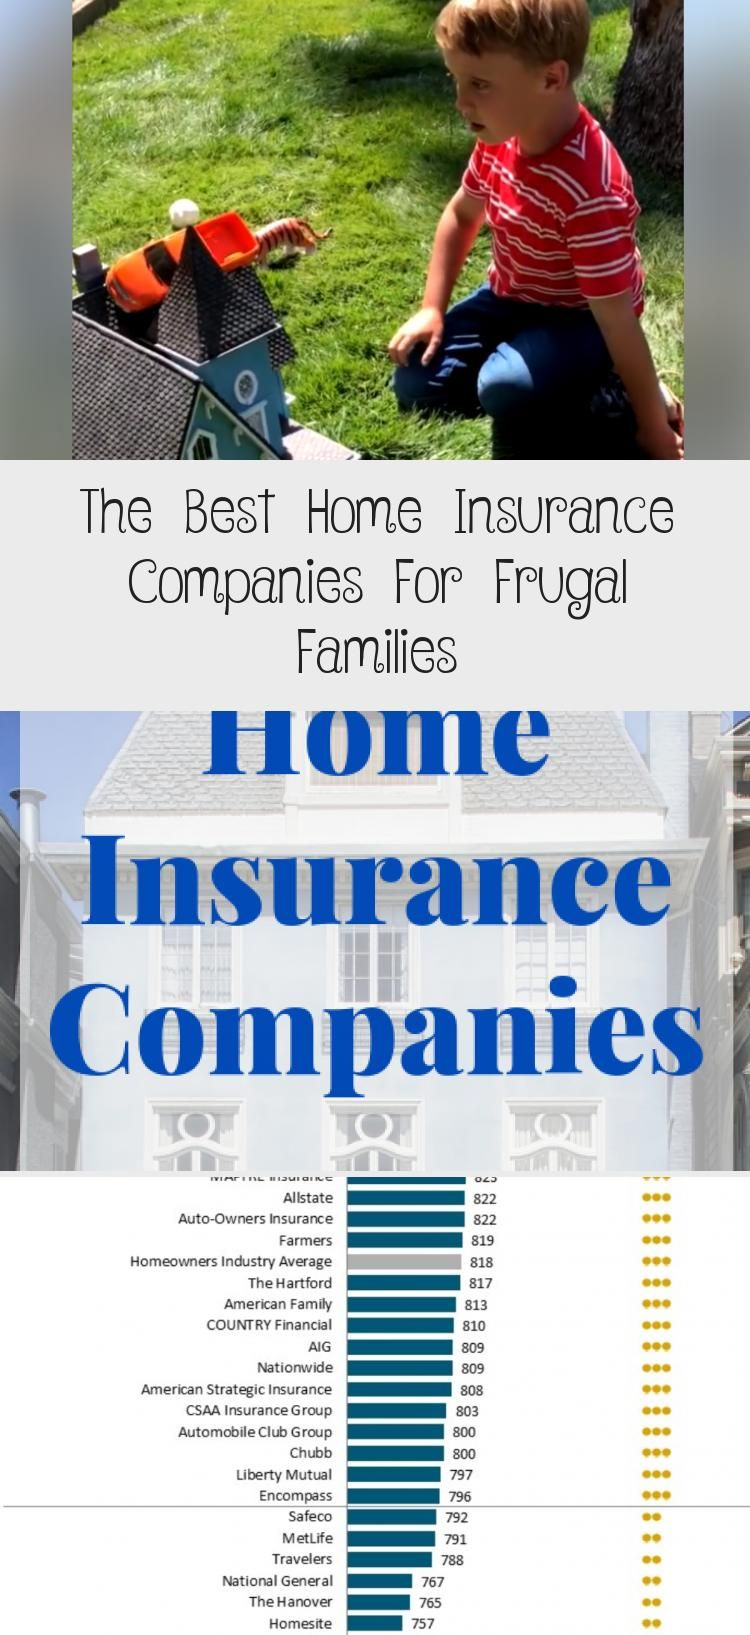 The Best Home Insurance Companies For Frugal Families in